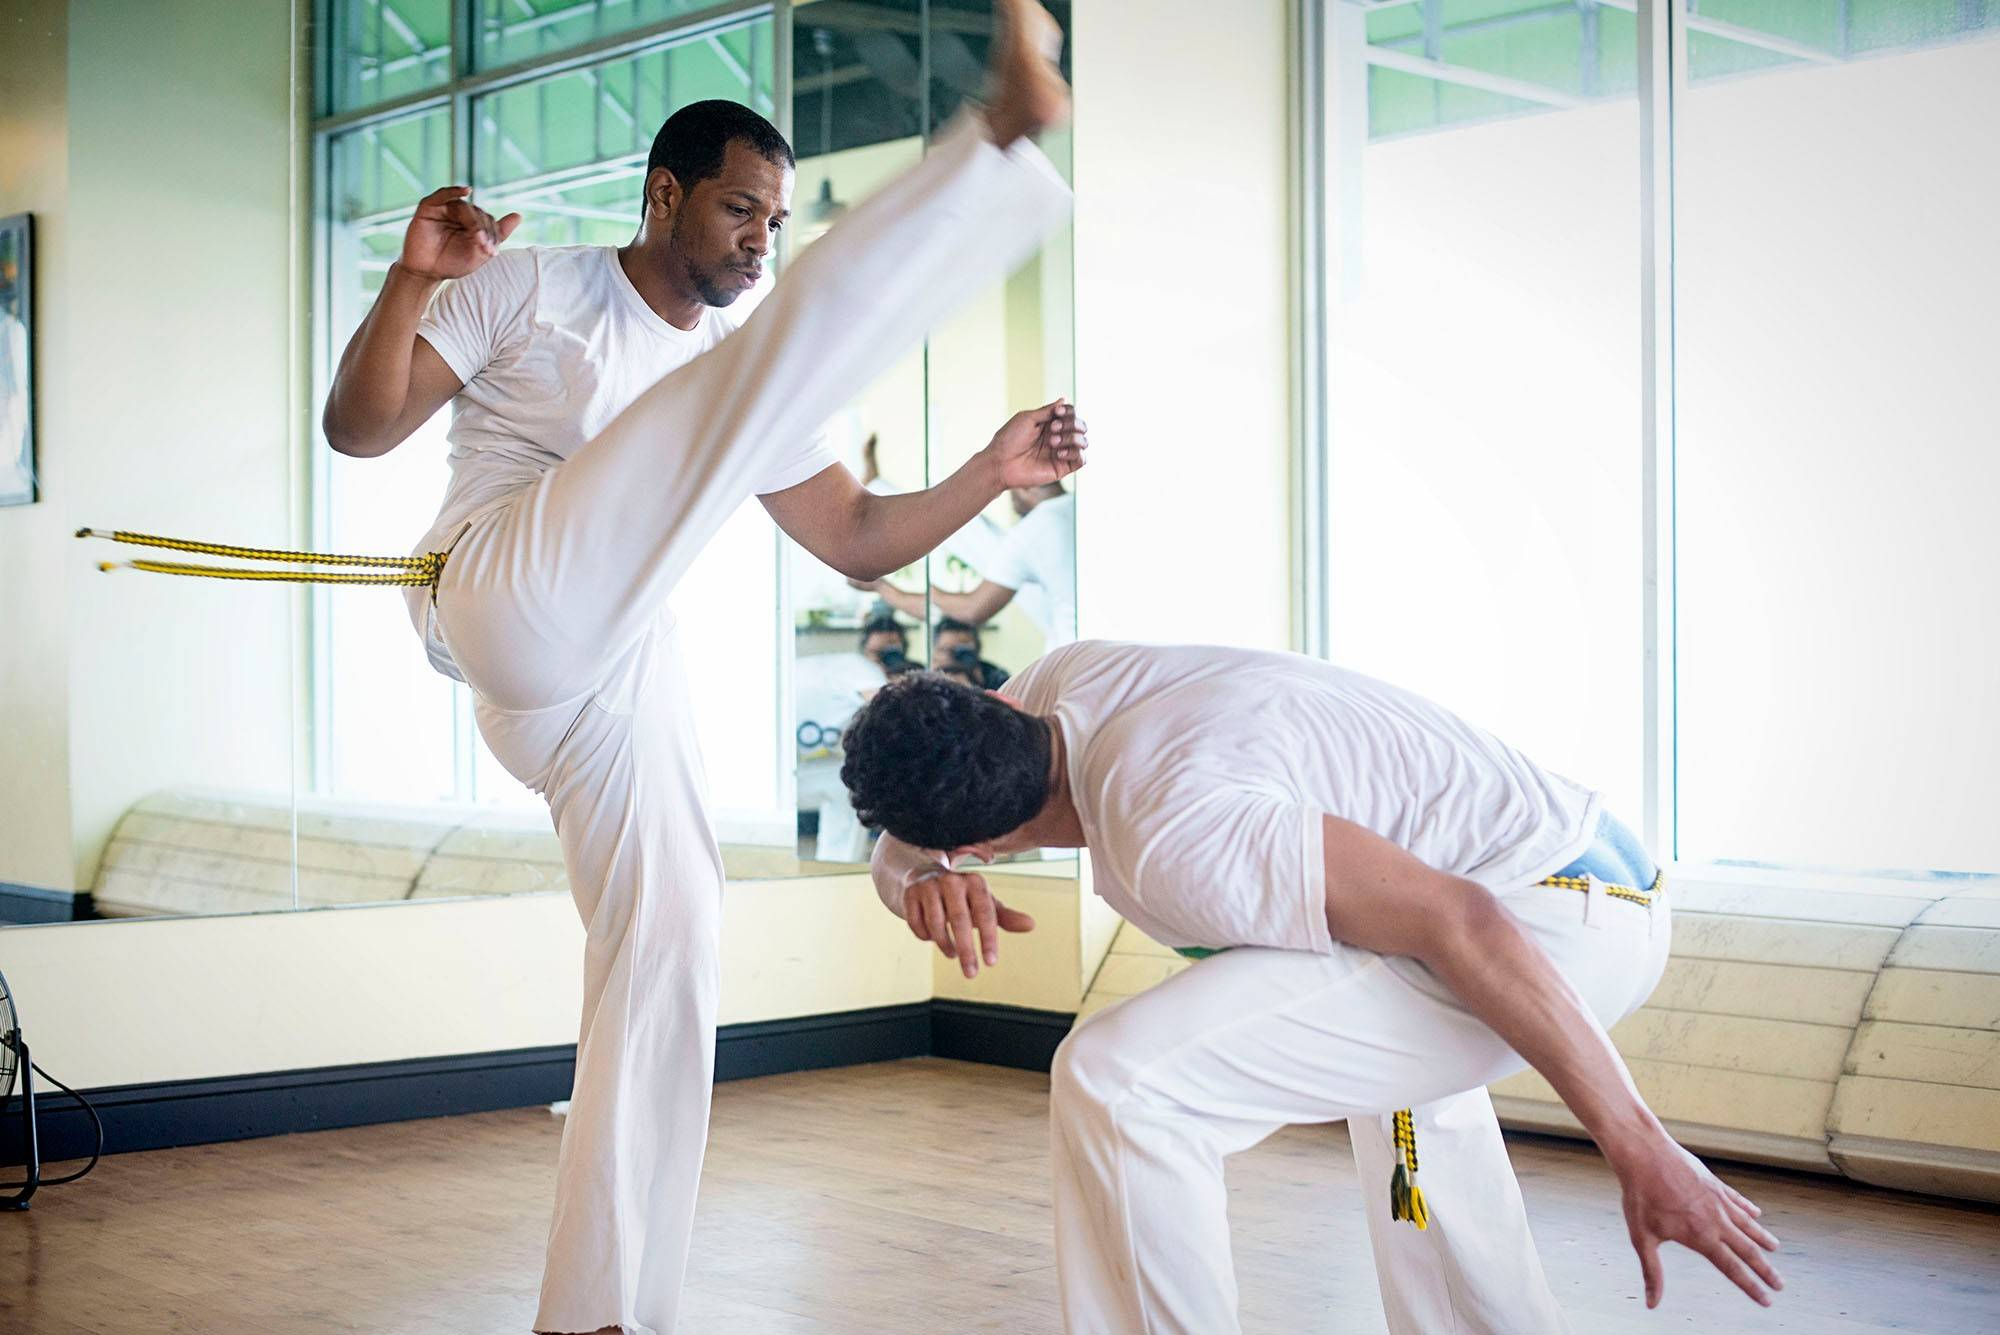 Ali Ahmad, left and Amado Carsky spar in capoeira class; capoeira is accompanied by drums and singing, true to its Brazilian origins.